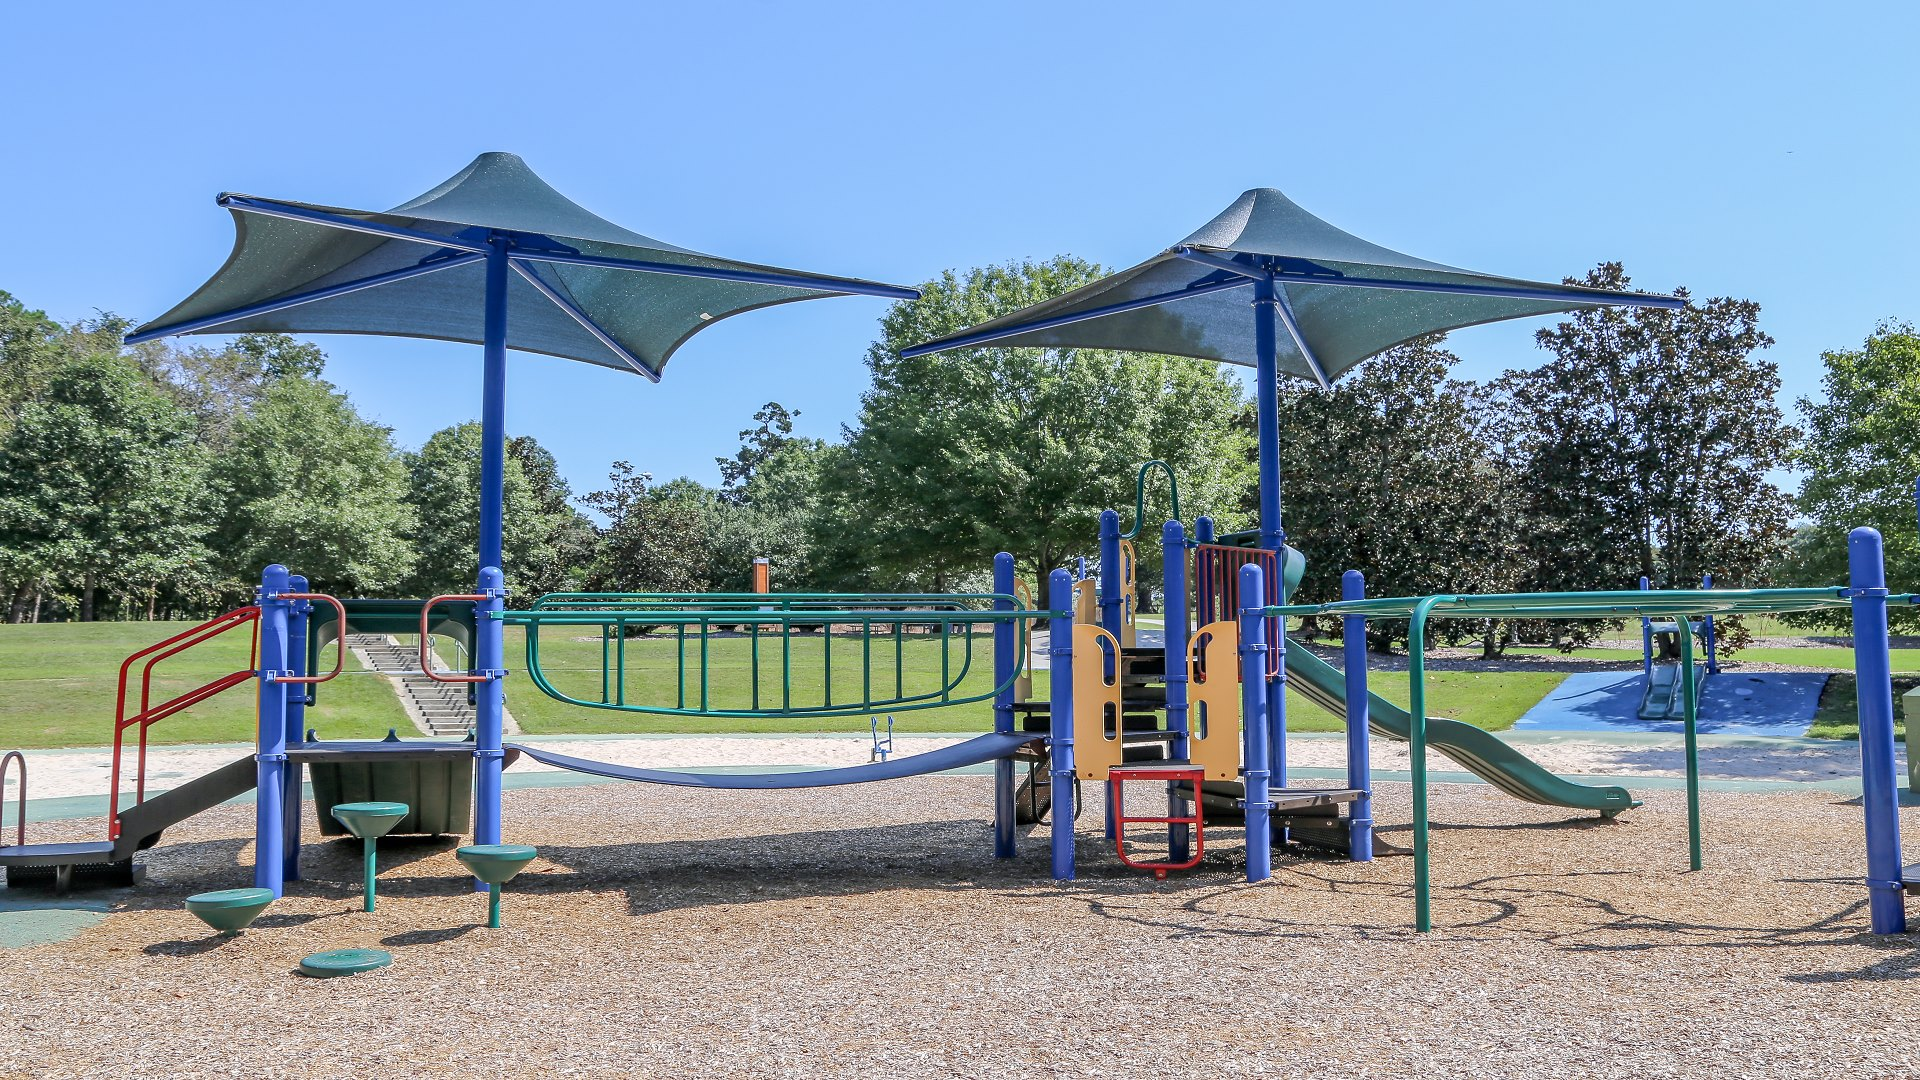 A large playground for children up to 12 years old at Anderson Point